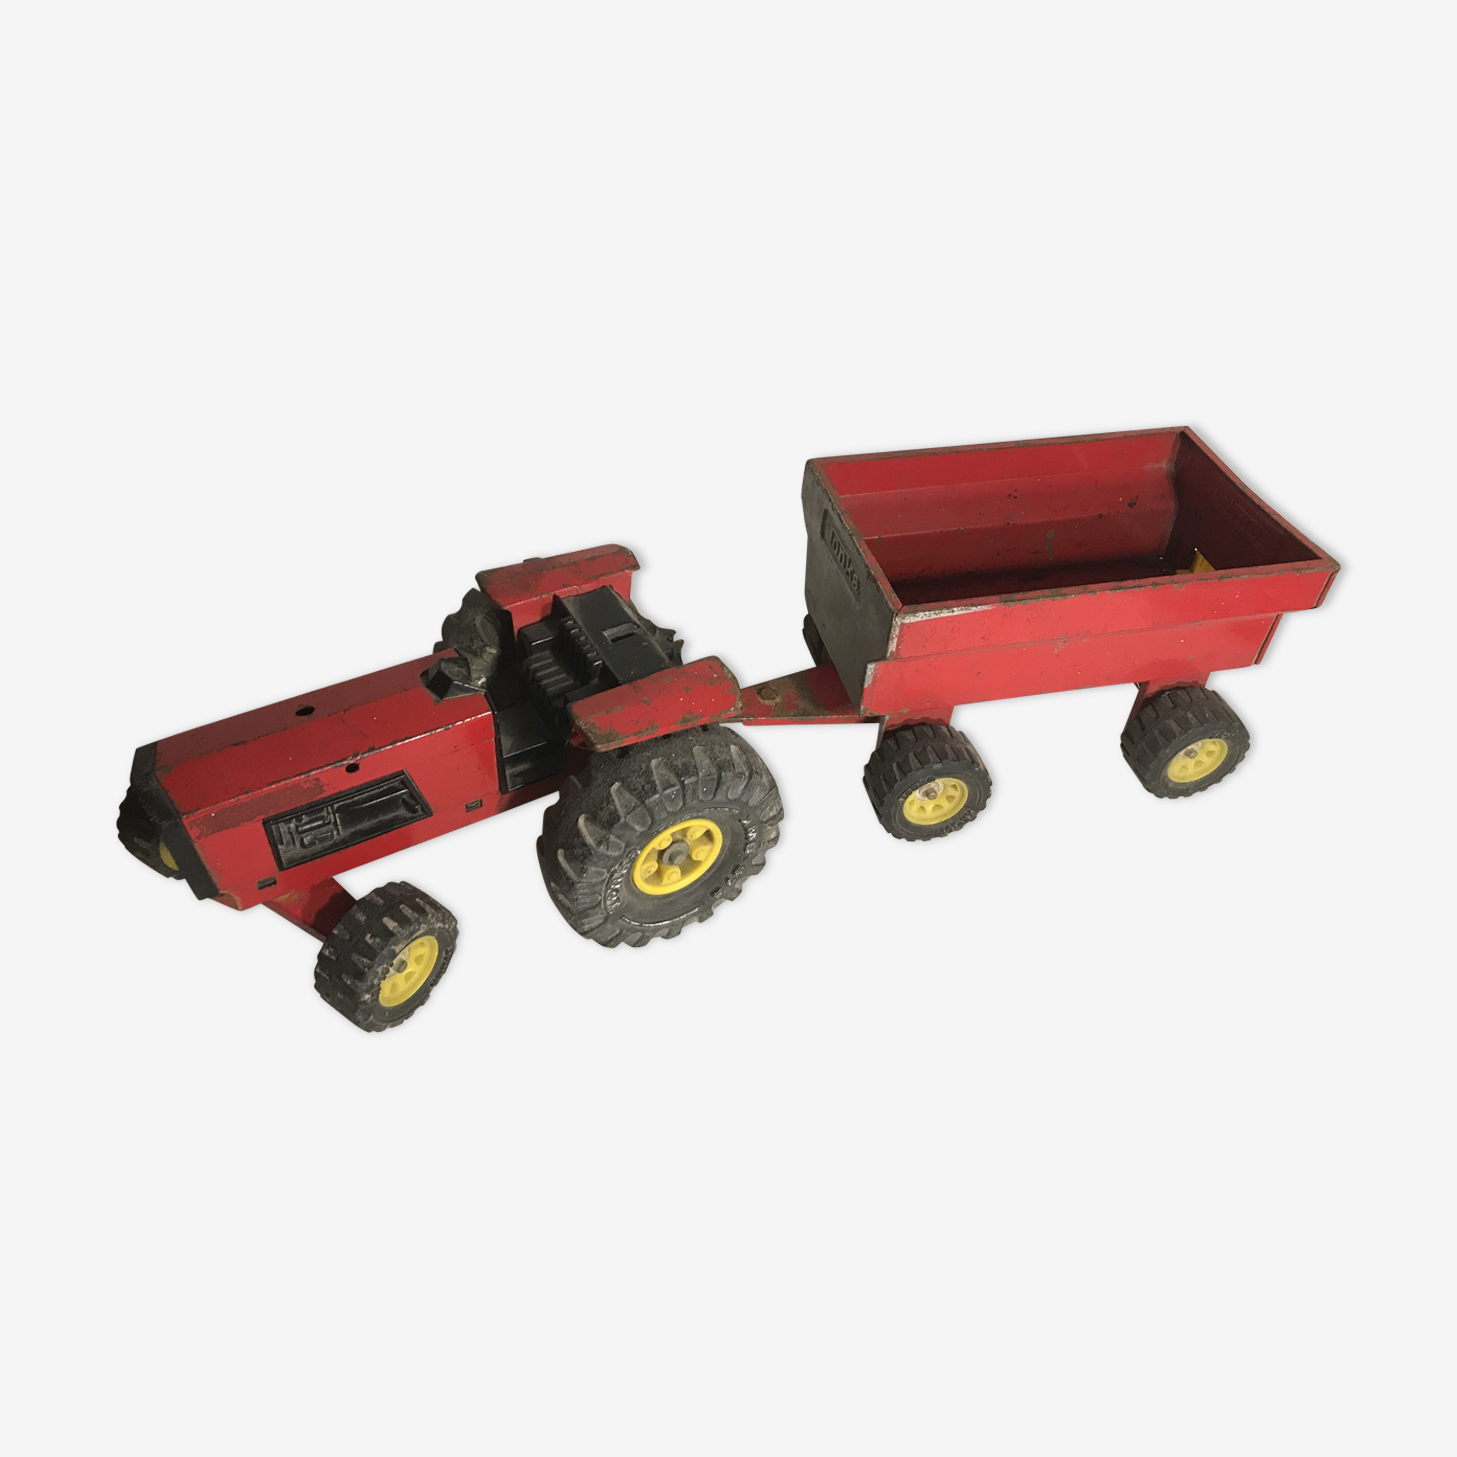 Old tonka tractor toy